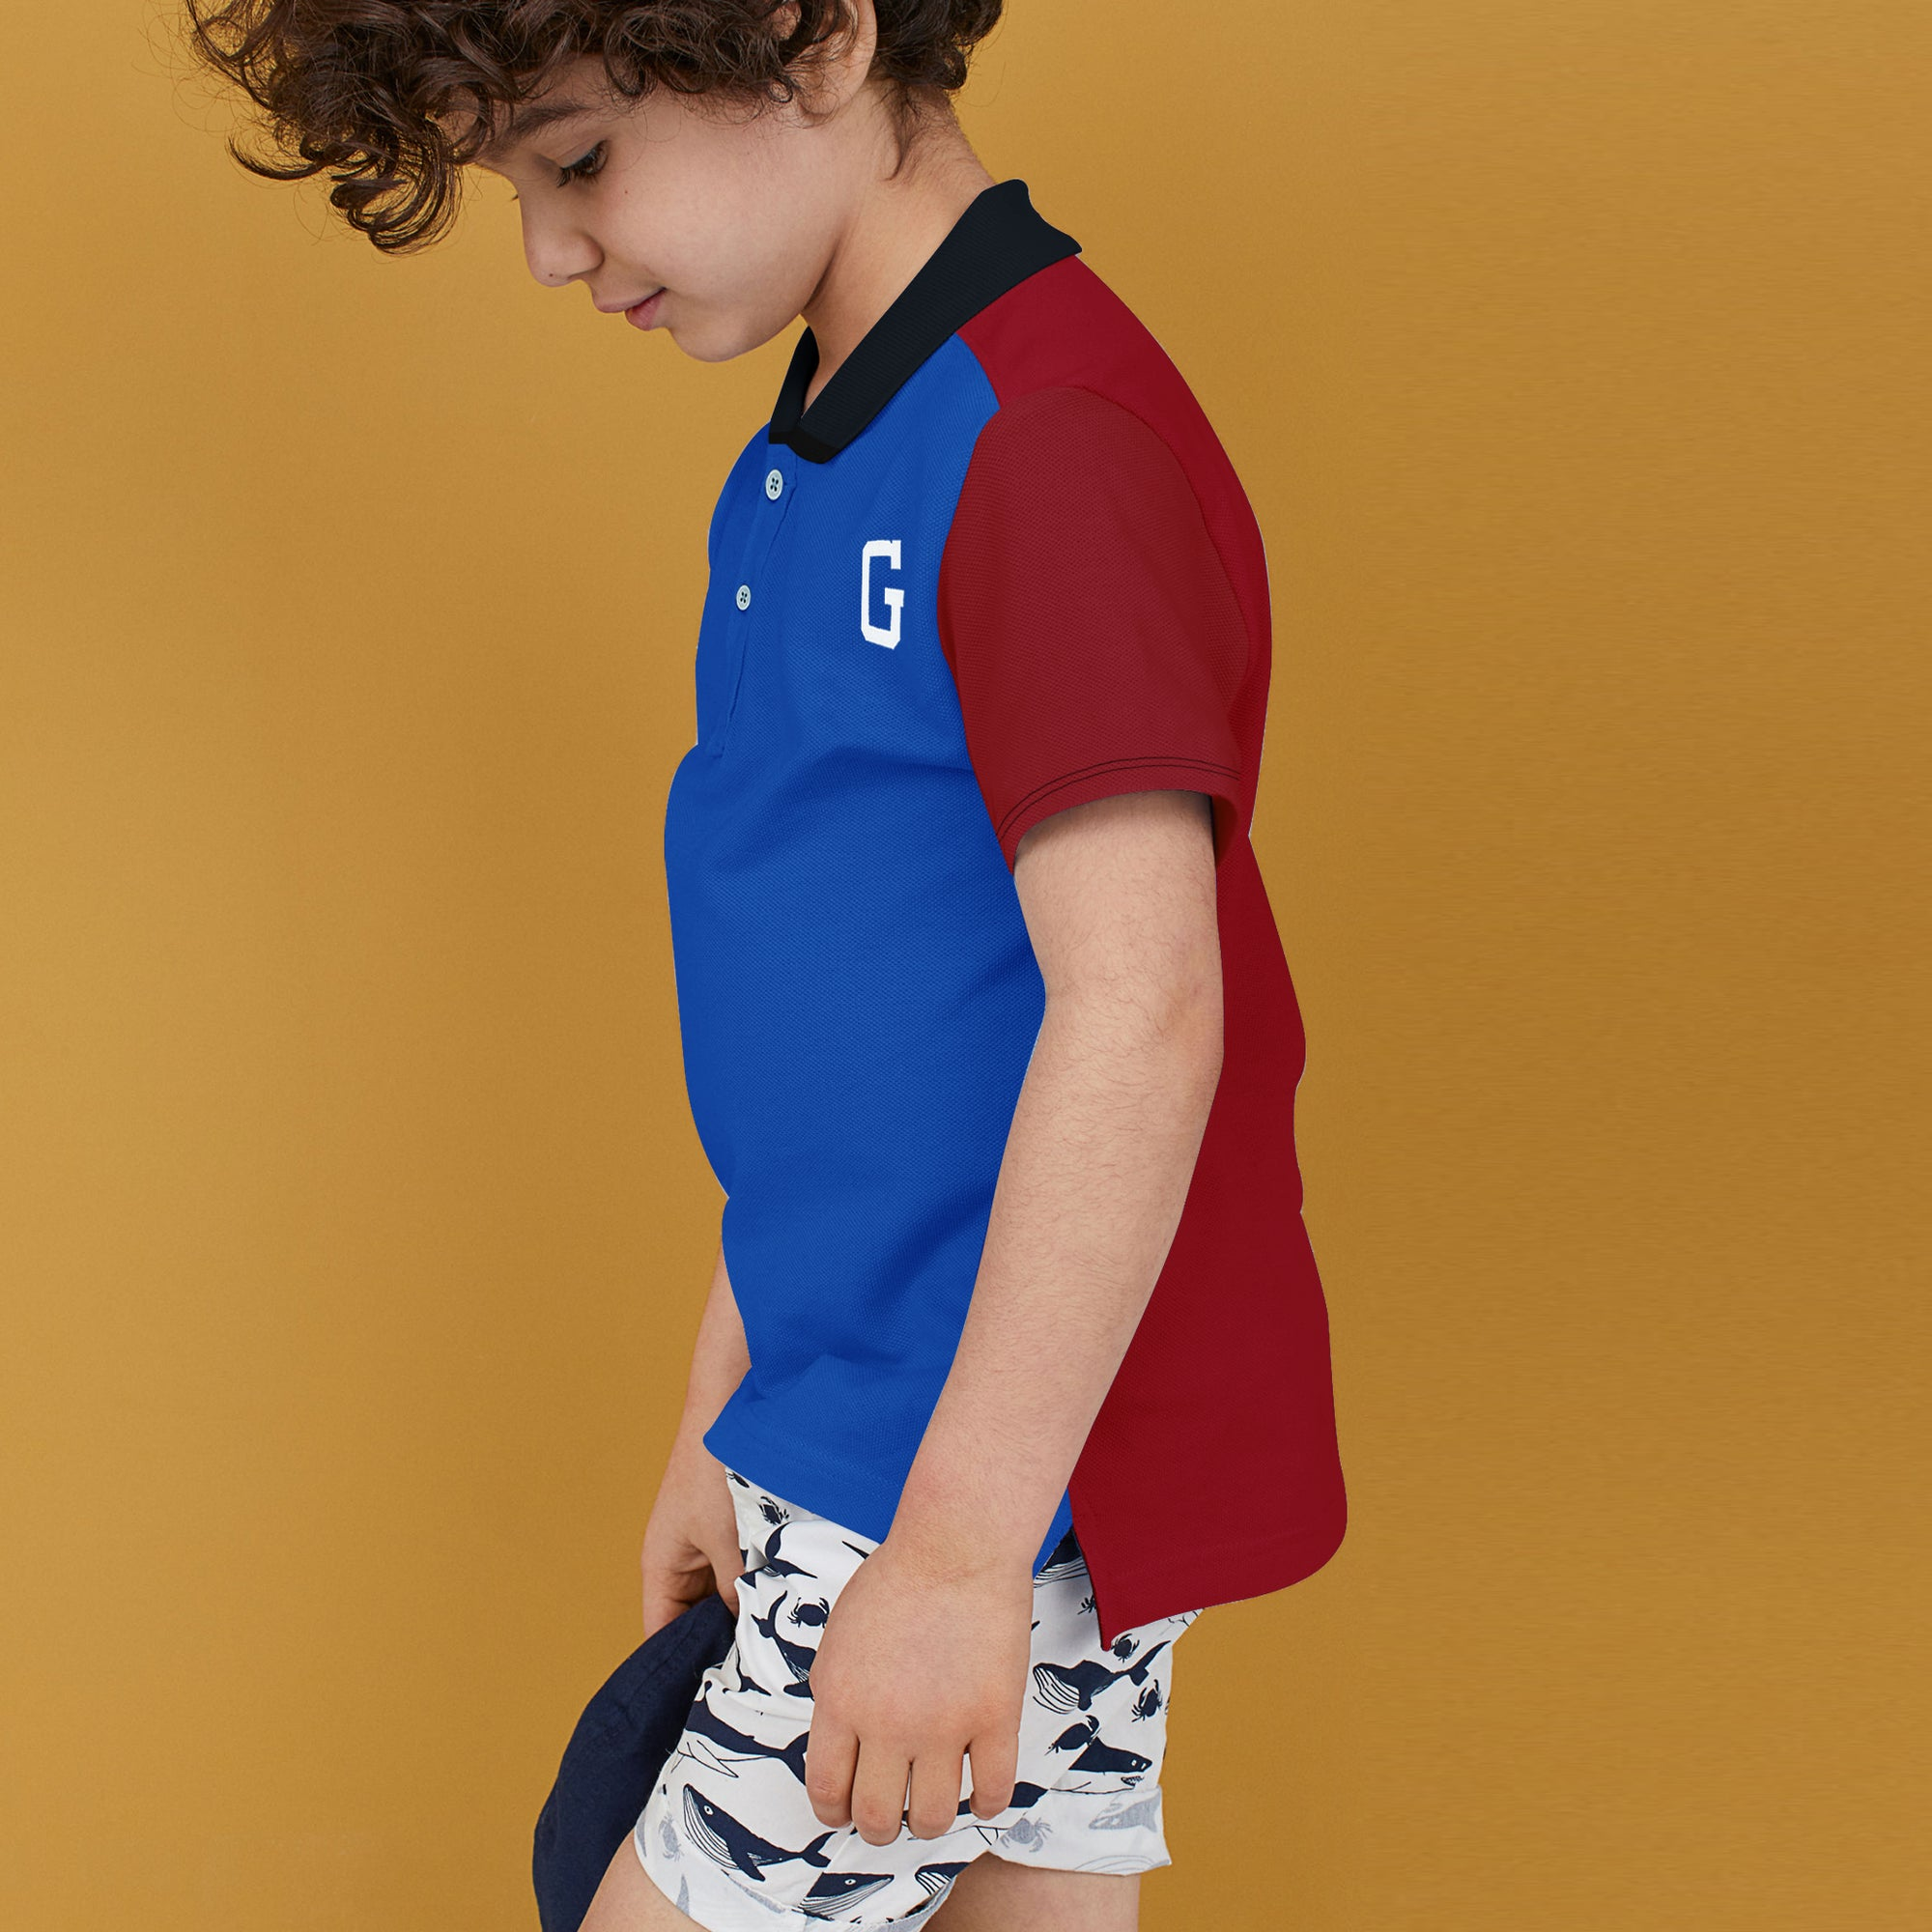 GAP Half Sleeve P.Q Polo Shirt For Kids-BE8628